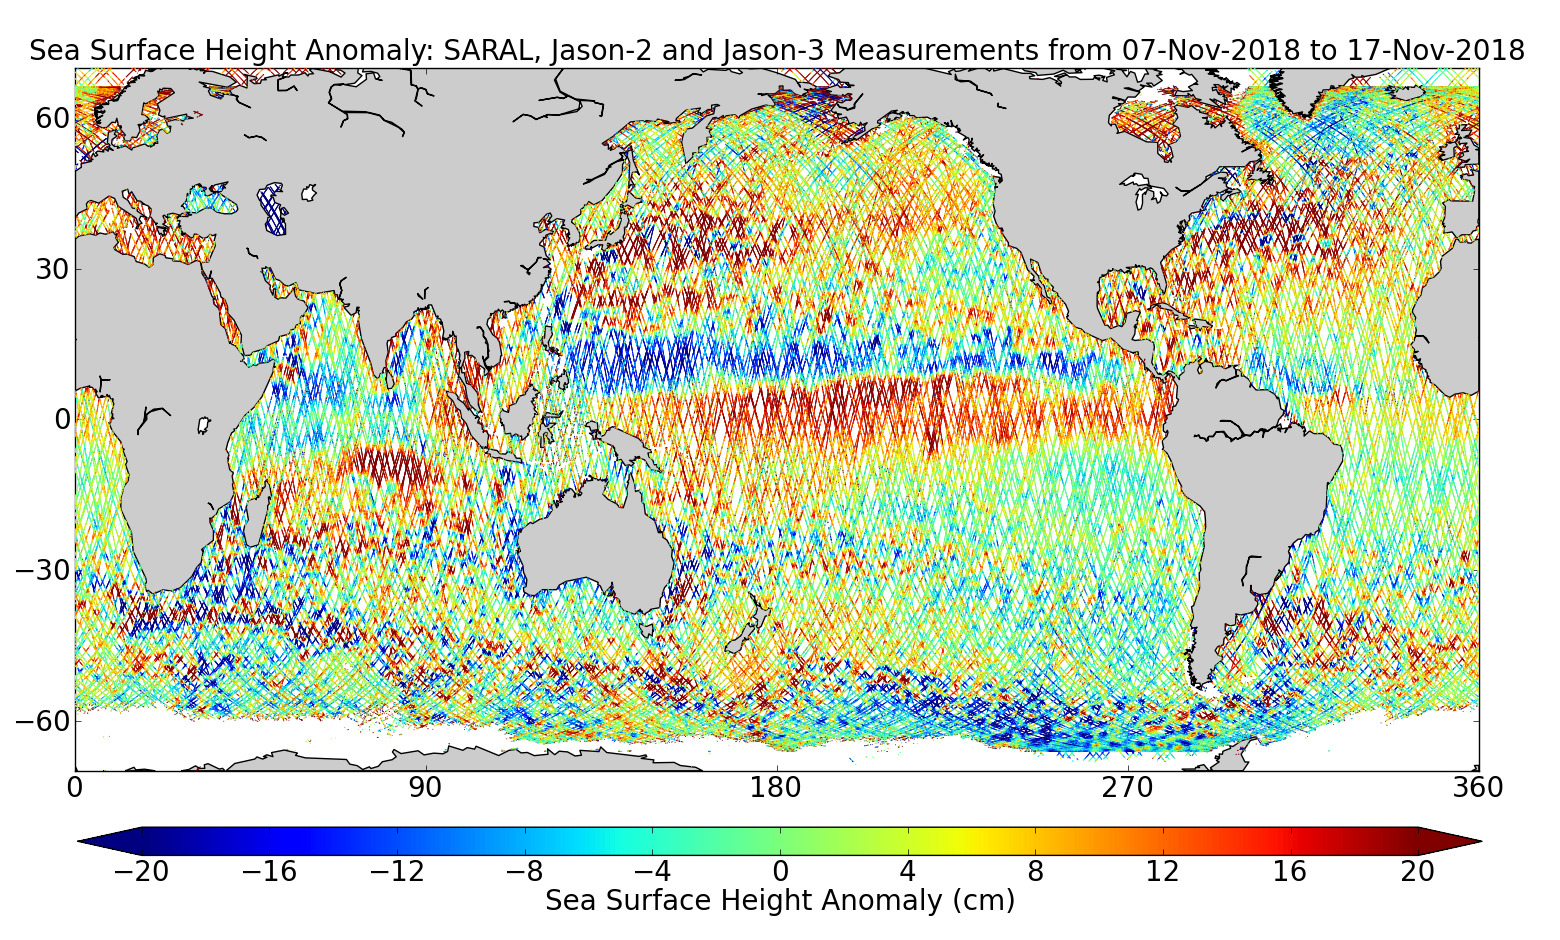 Sea Surface Height Anomaly: SARAL, Jason-2 and Jason-3 Measurements from 07-Nov-2018 to 17-Nov-2018